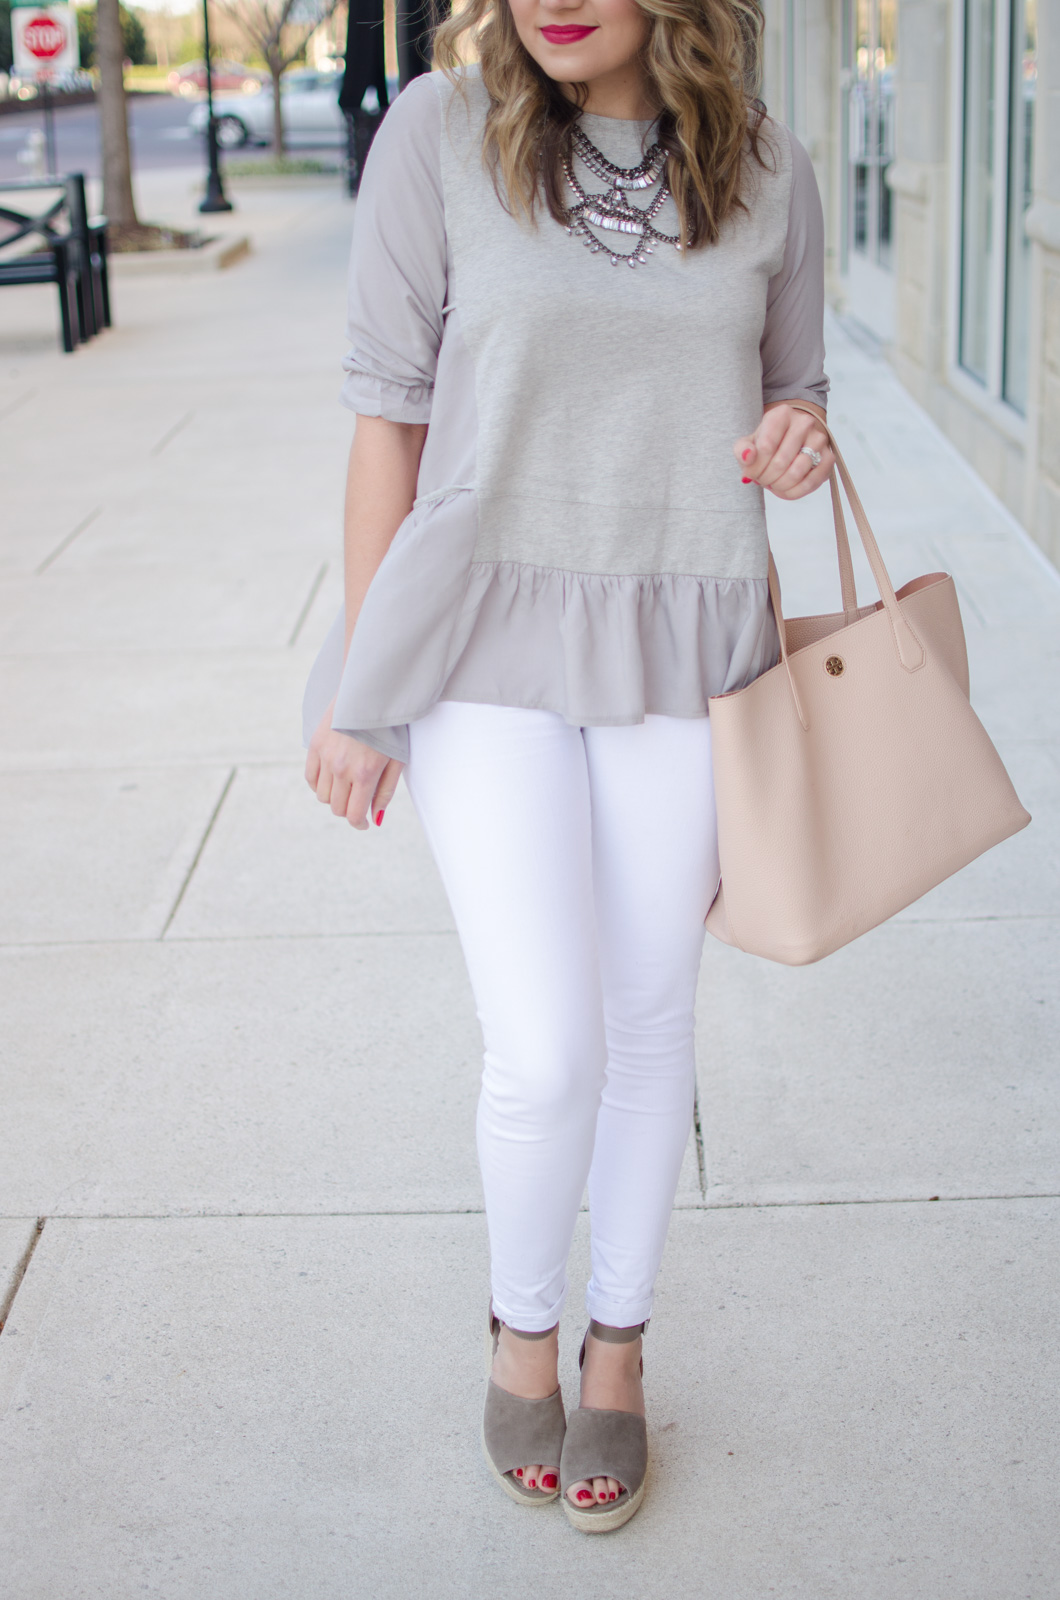 white jeans outfit - what to wear for Spring. Click through for more cute Spring outfits or to shop this look! bylaurenm.com